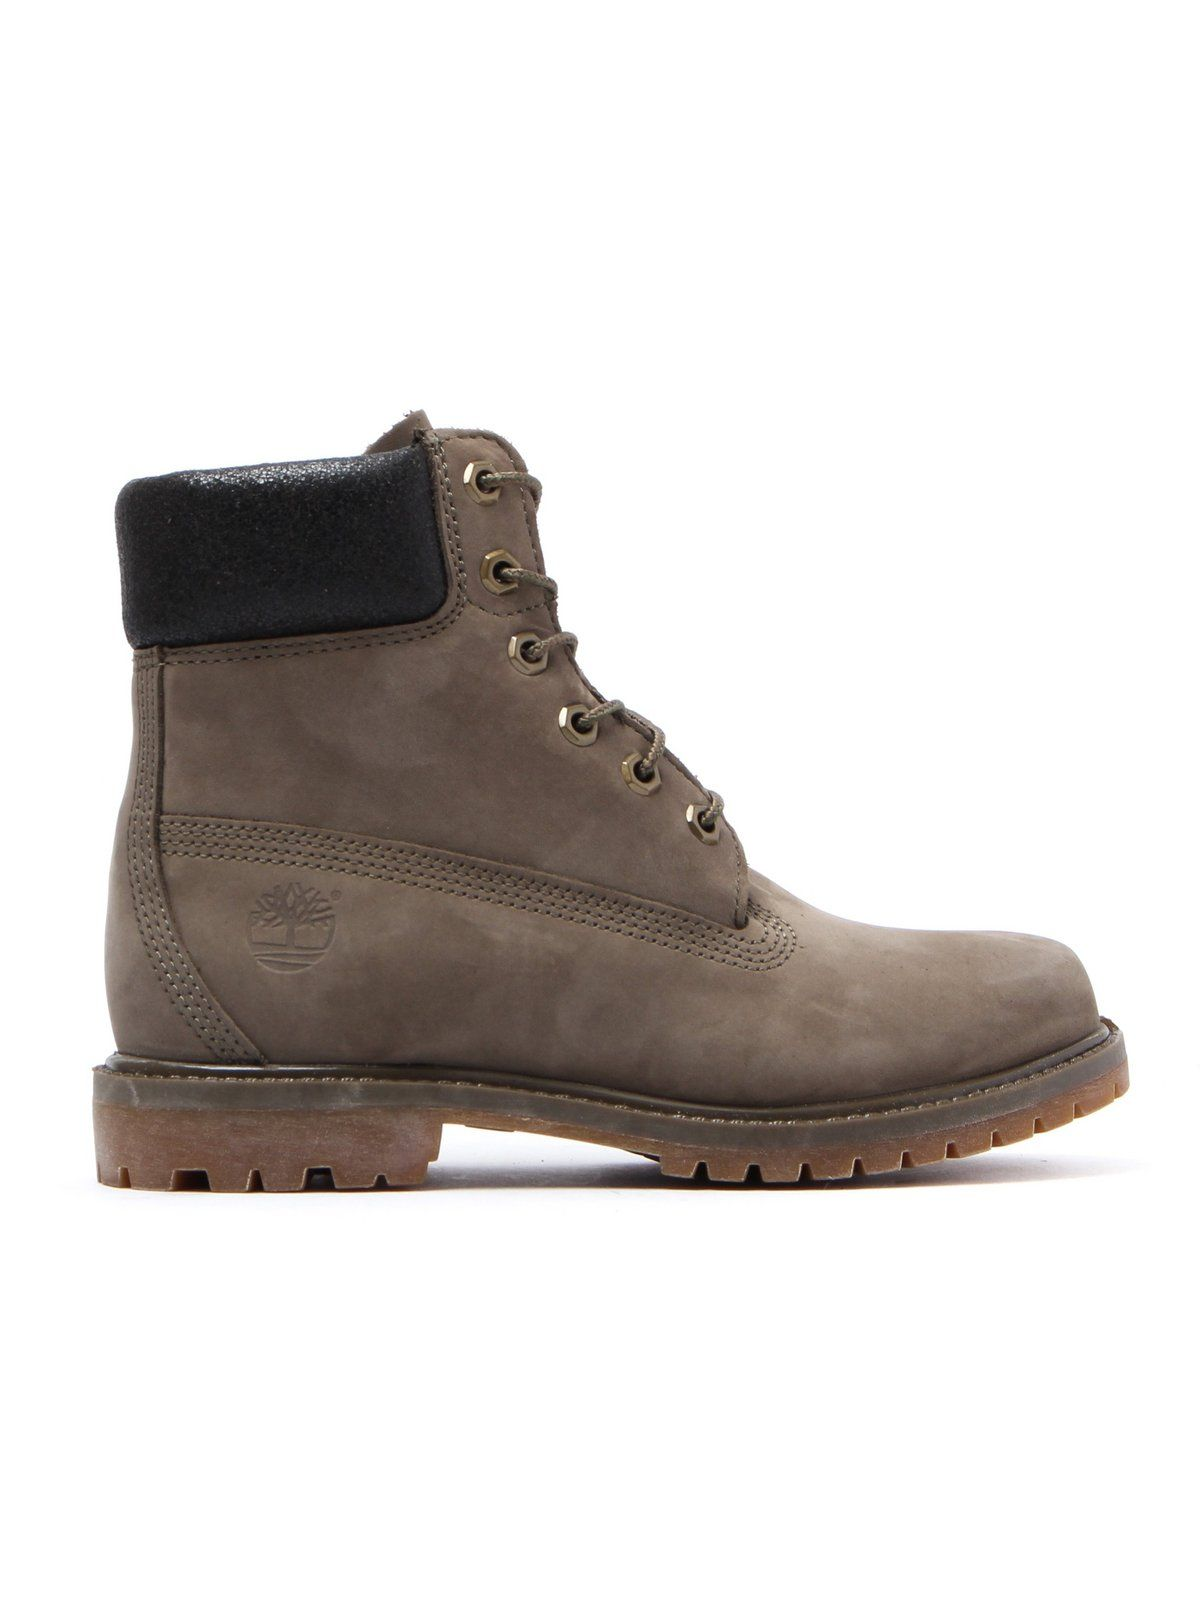 d085448f15 Timberland Women's 6 Inch Premium Boots - Olive Nubuck | *Shoes ...